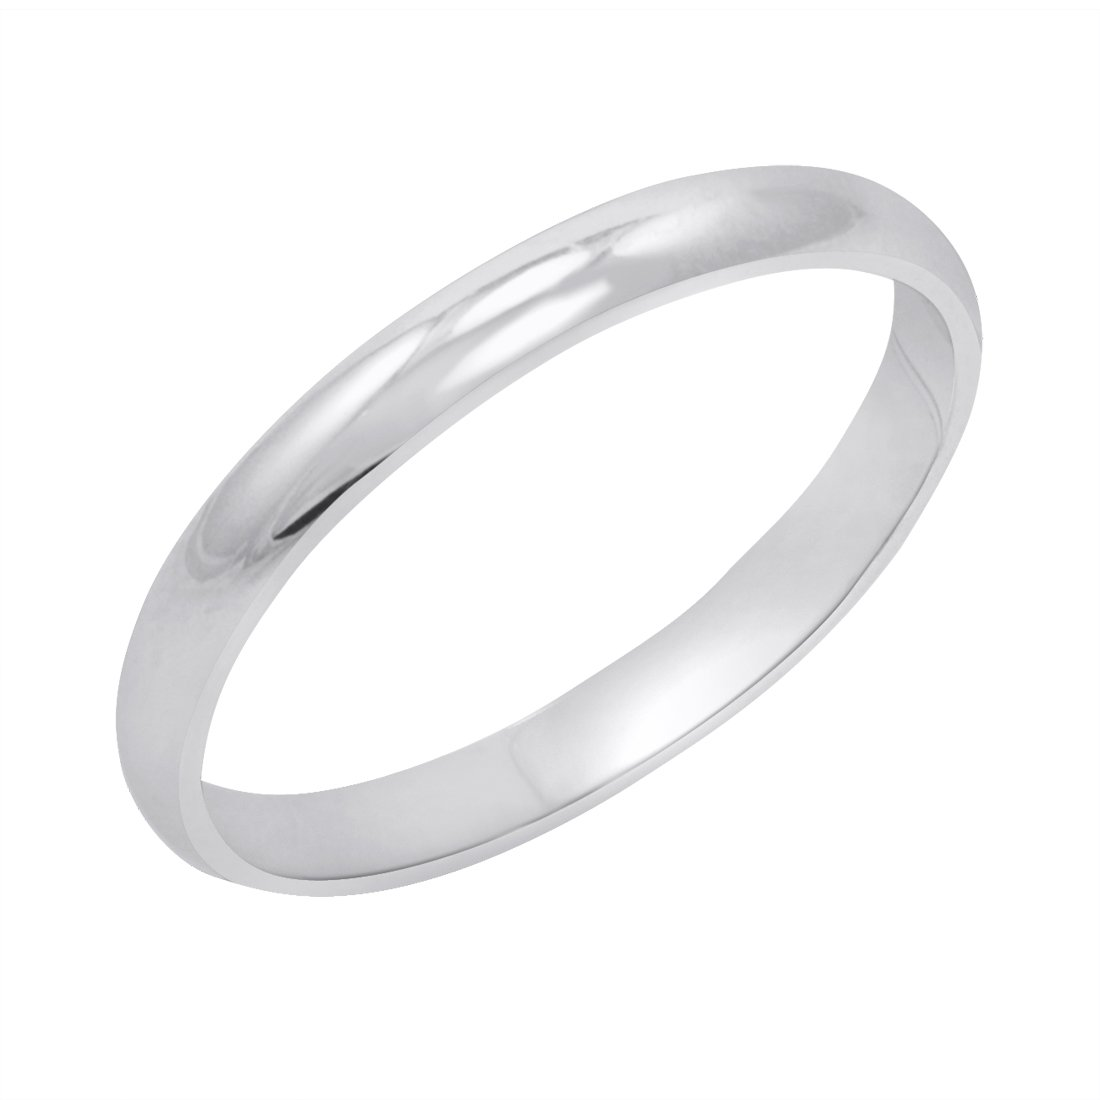 Women's 14K White Gold 2mm Classic Fit Plain Wedding Band (Available Ring Sizes 4-8 1/2) Size 7